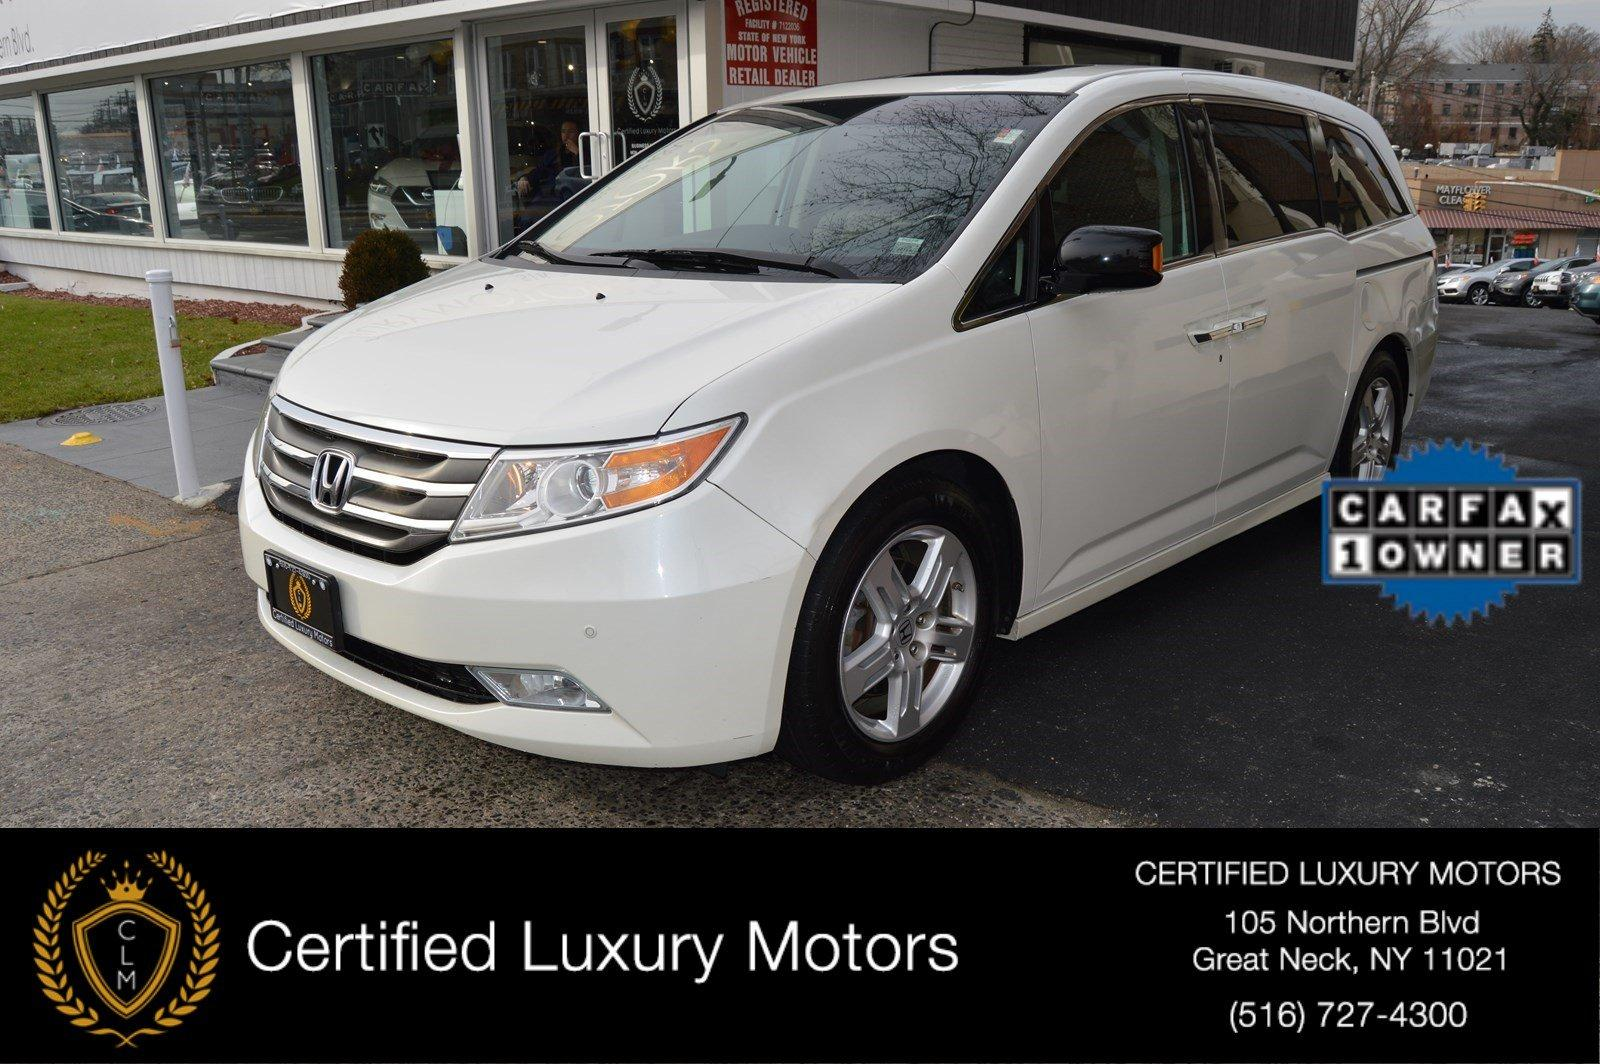 2012 honda odyssey touring elite stock t4695 for sale near great neck ny ny honda dealer. Black Bedroom Furniture Sets. Home Design Ideas